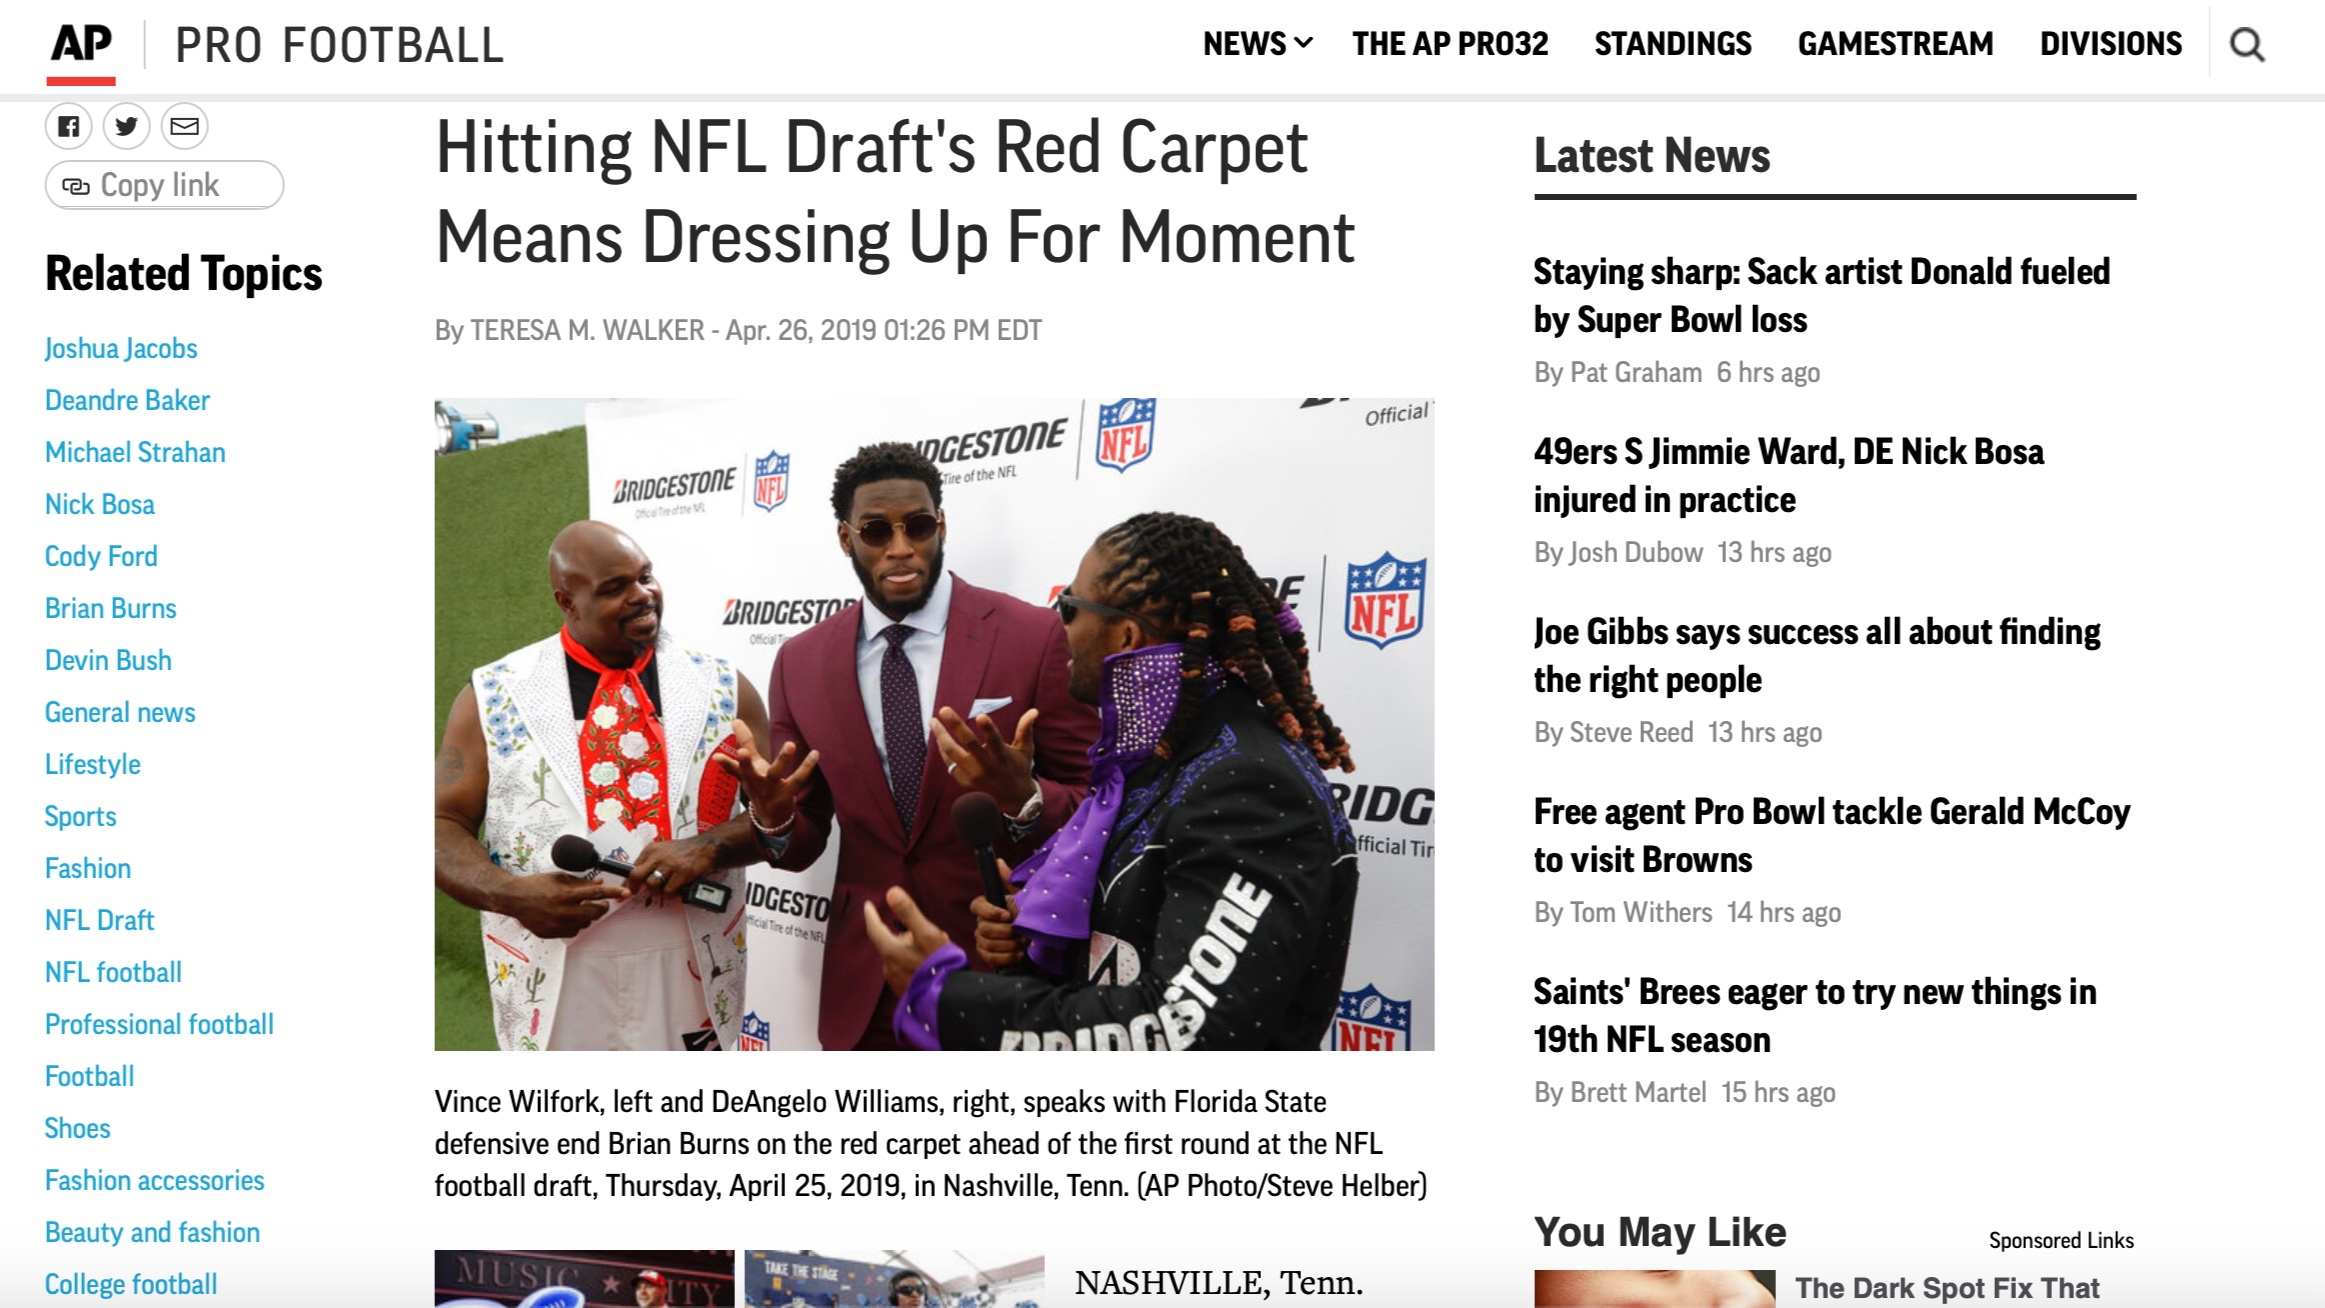 Associated Press , April 26, 2019   Hitting NFL Draft's Red Carpet Means Dressing Up For Moment